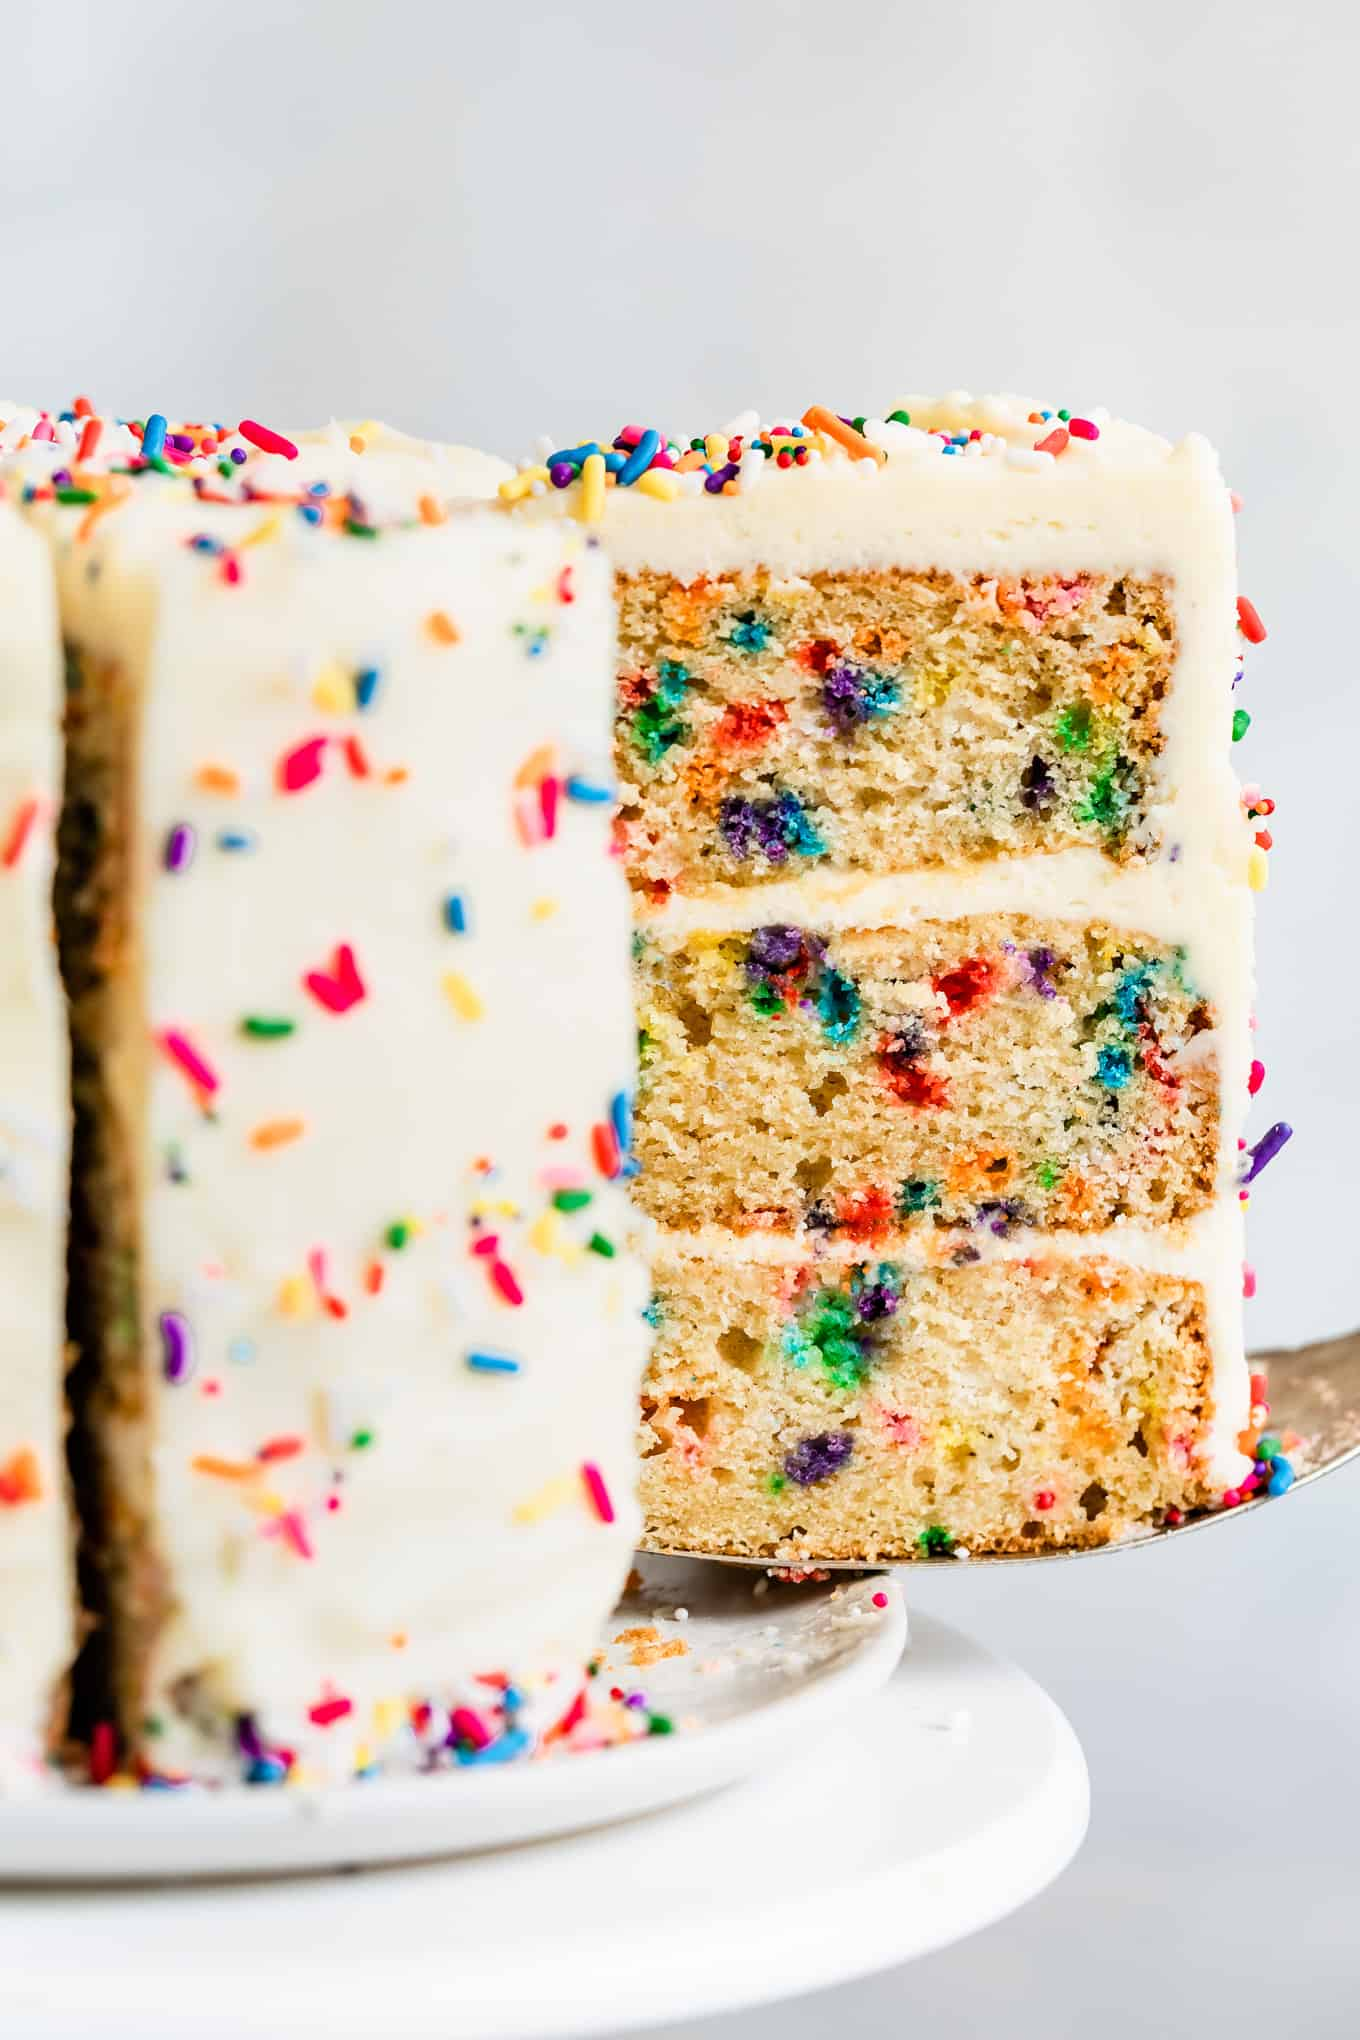 Close-up of Gluten-Free Funfetti Cake with Frosting and Sprinkles